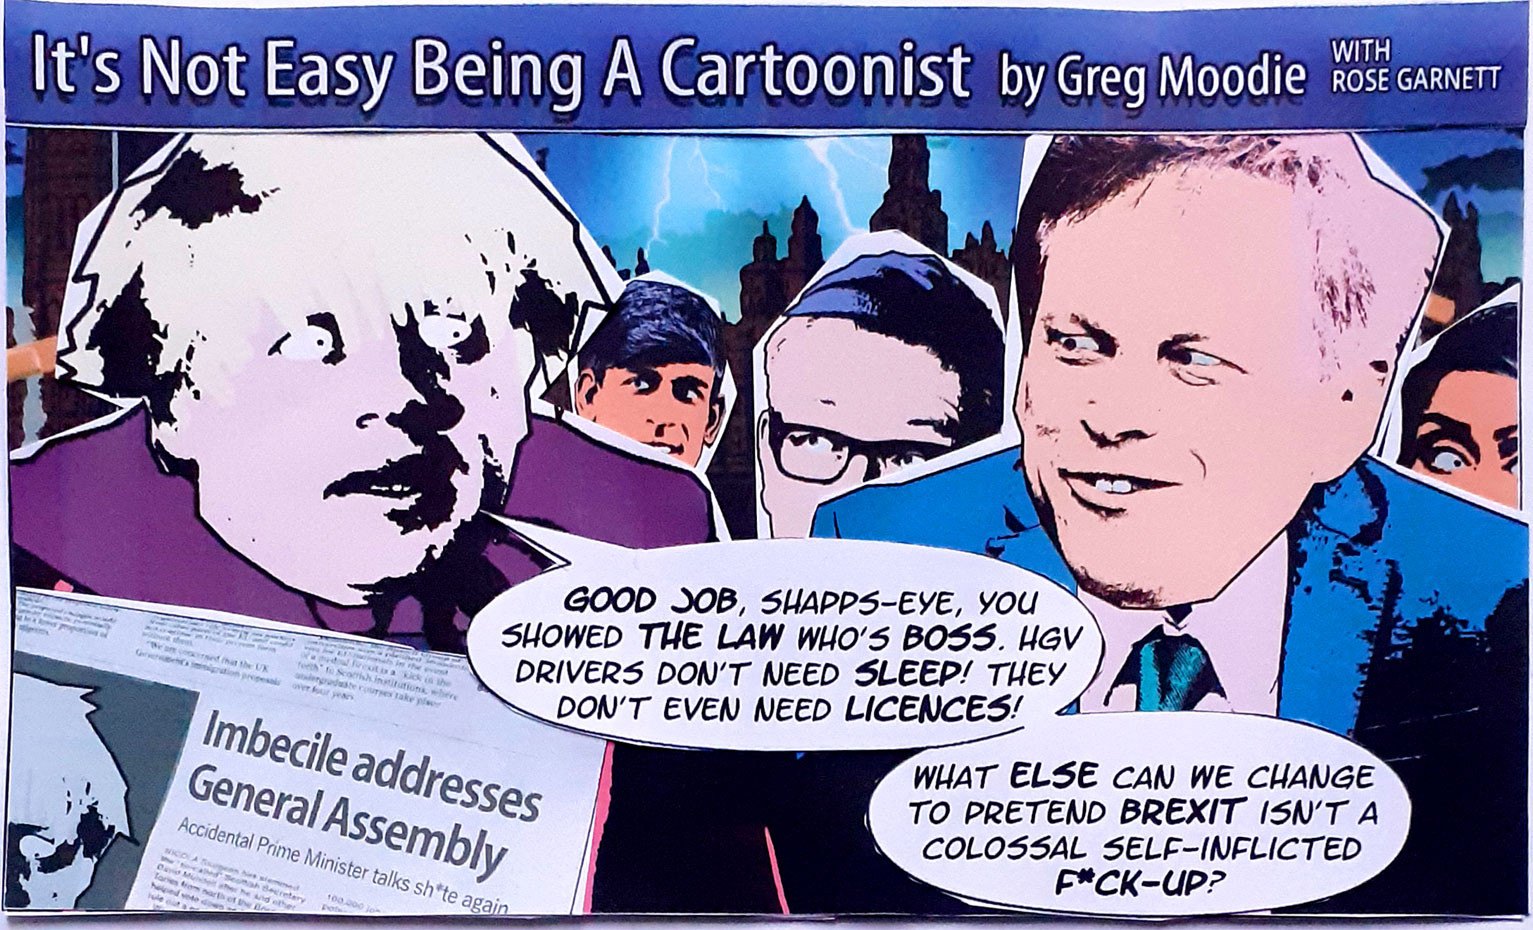 It's Not Easy Being A Cartoonist